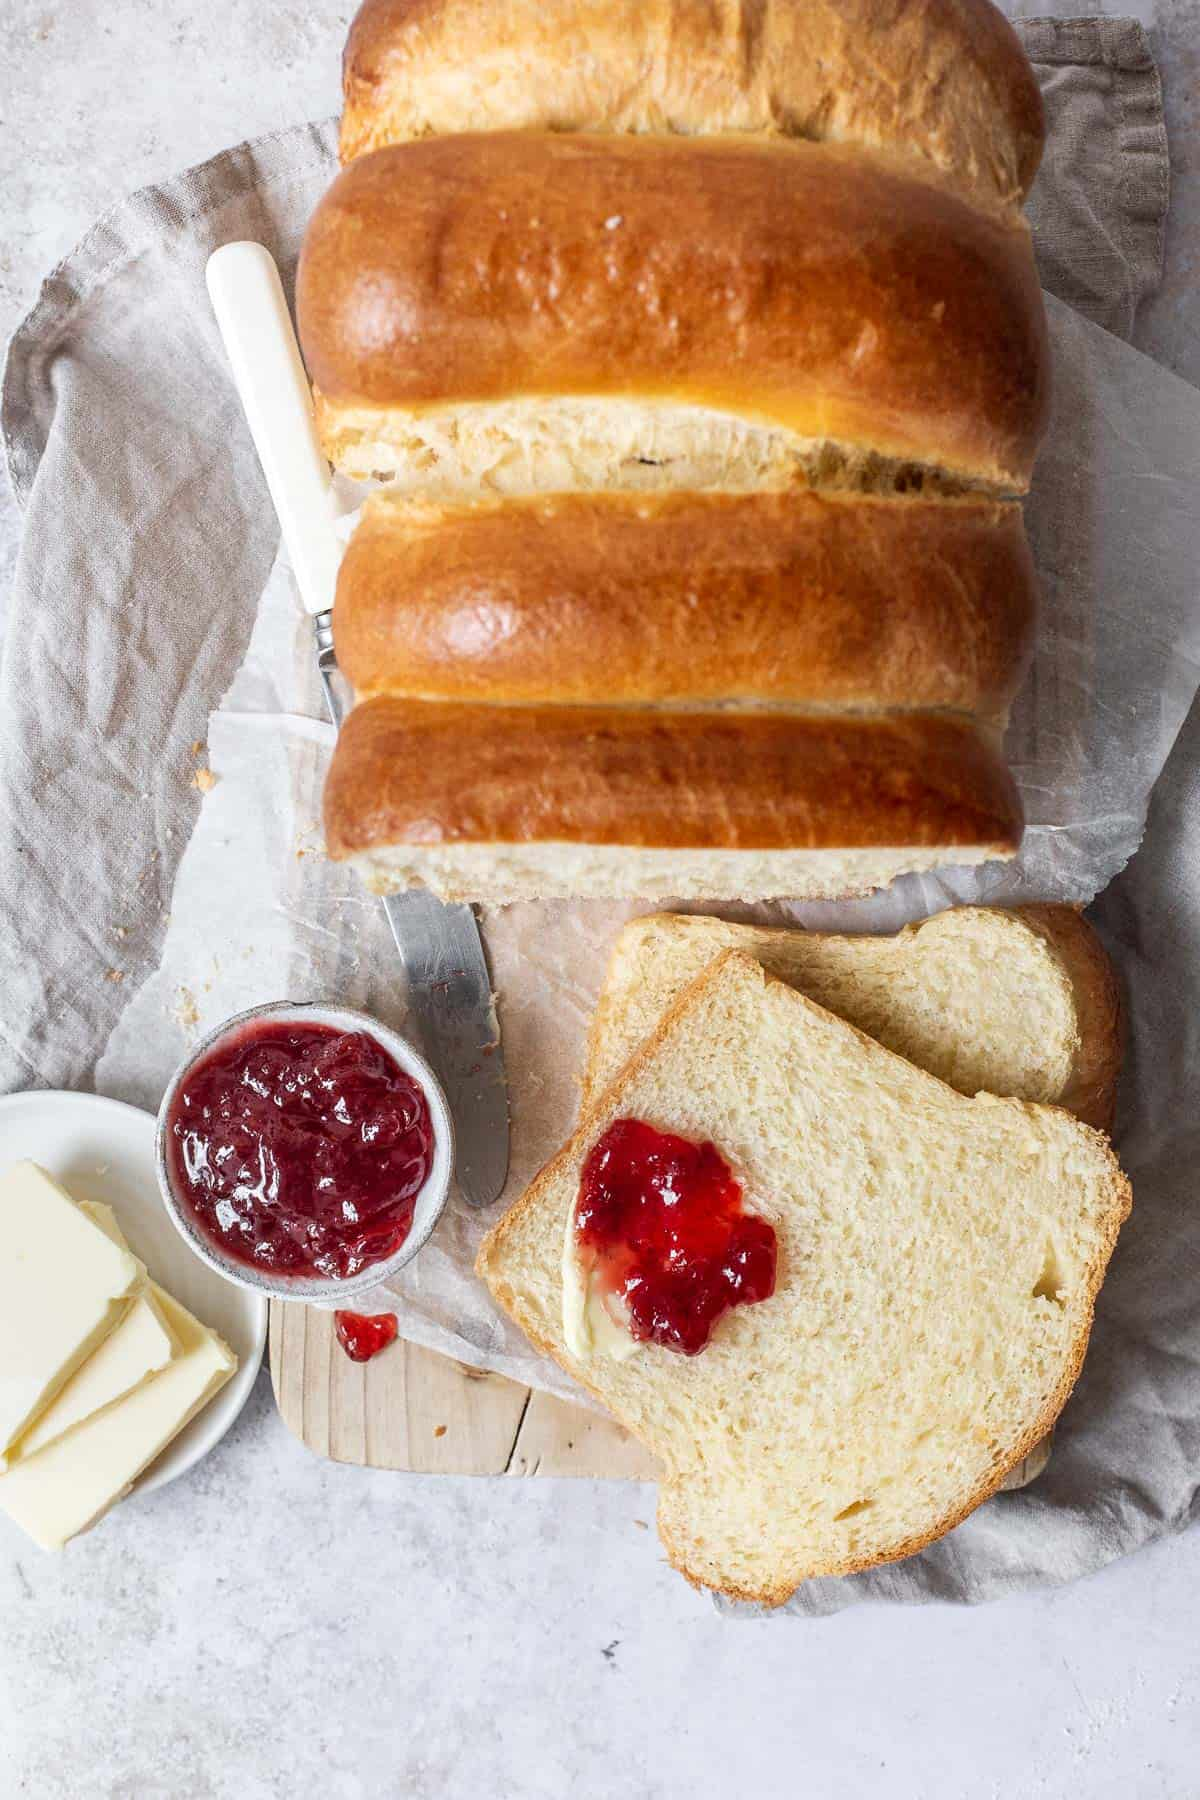 Golden Enriched Brioche Bread, sliced and served with jam for breakfast